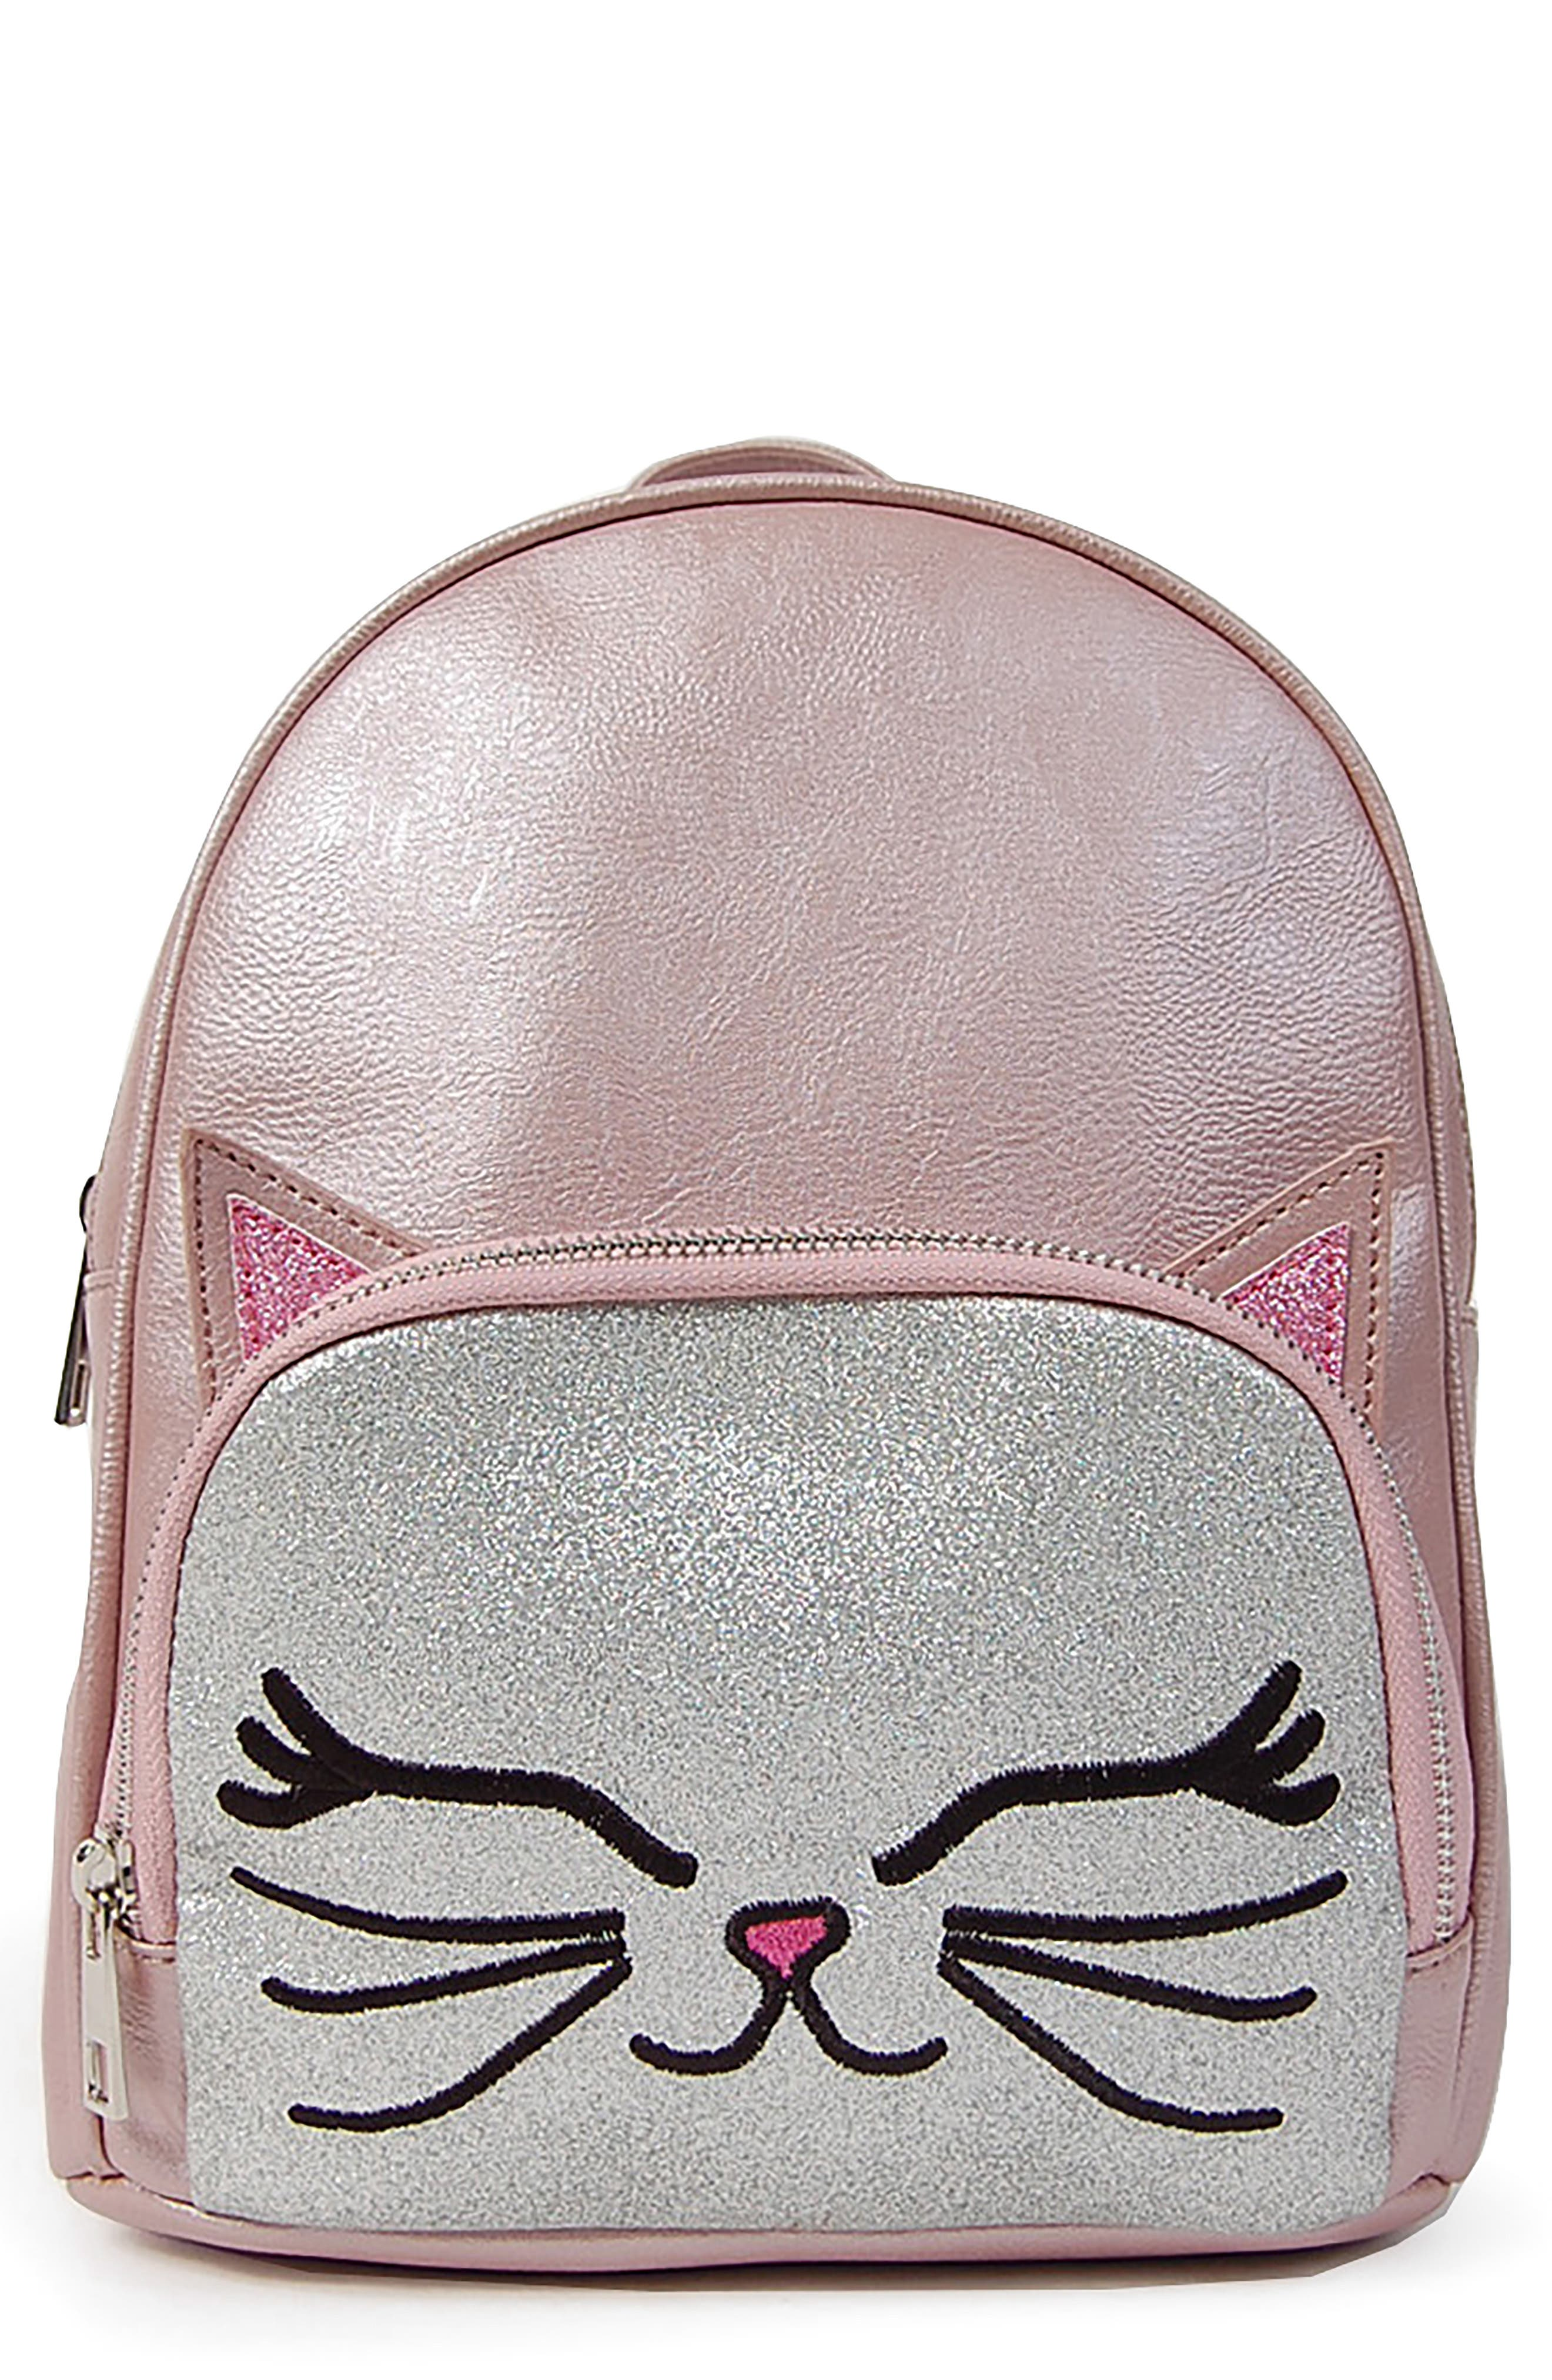 Pearlized Kitty Critter Mini Backpack, Main, color, PINK